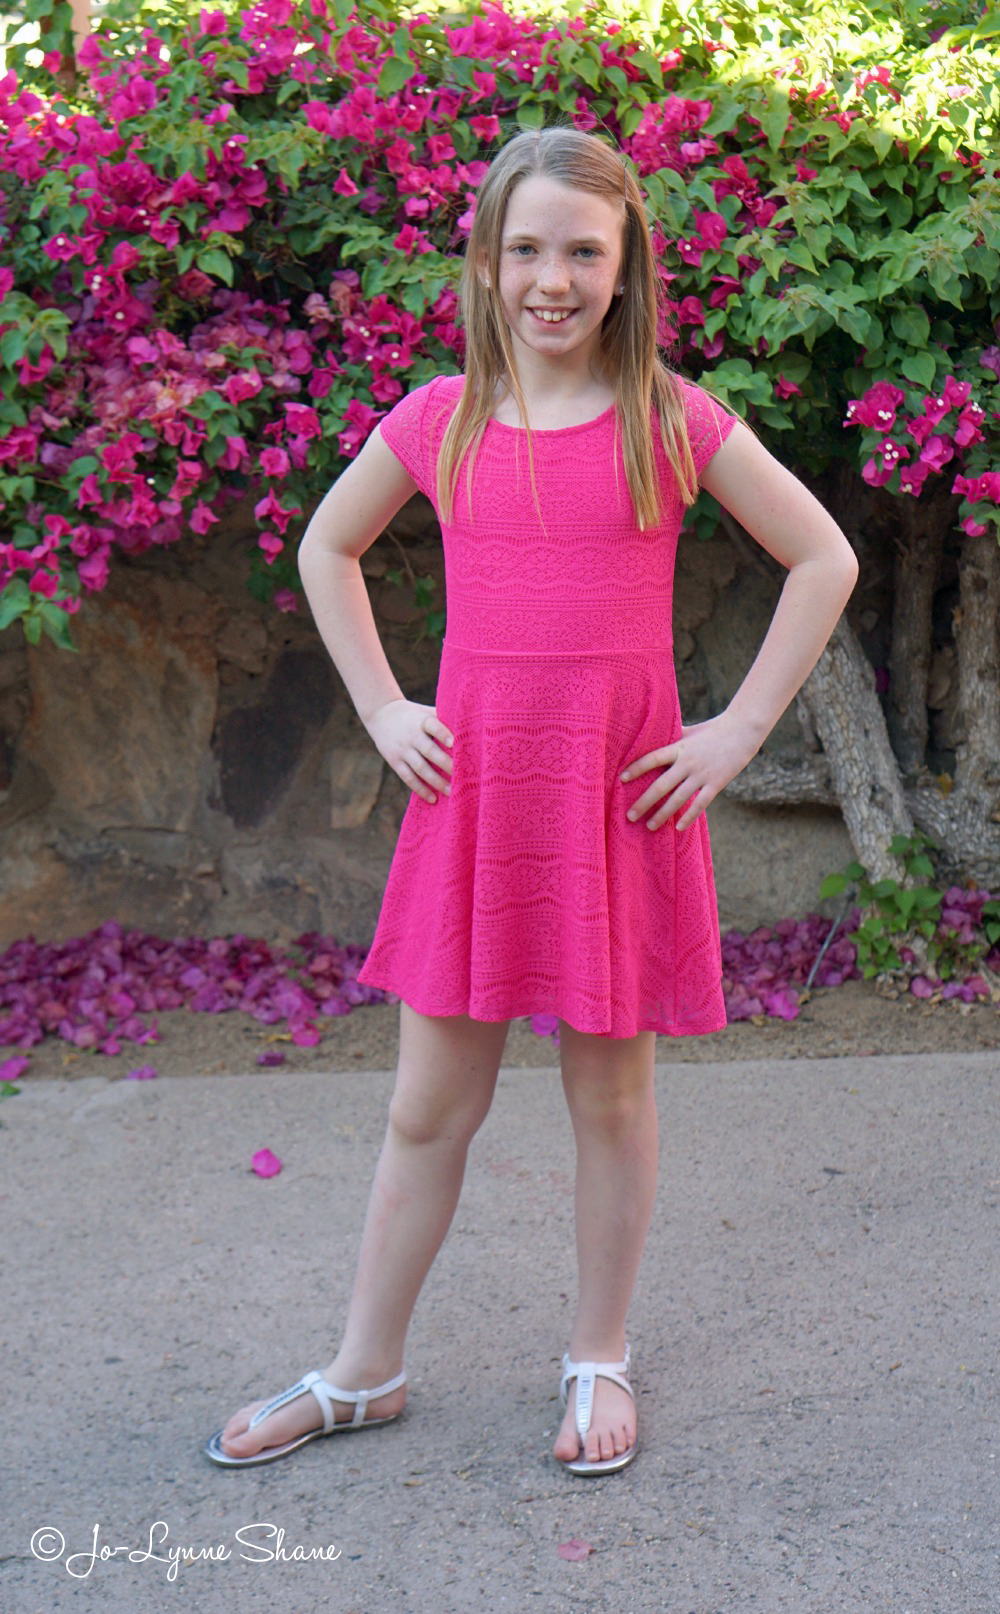 Tween Dresses. Infuse your tween's closet with style! Discover all the must-have tween dresses of the season from our top brands. Whether she's heading to school or hanging out with her besties, she's sure to be in fashion with our latest looks!